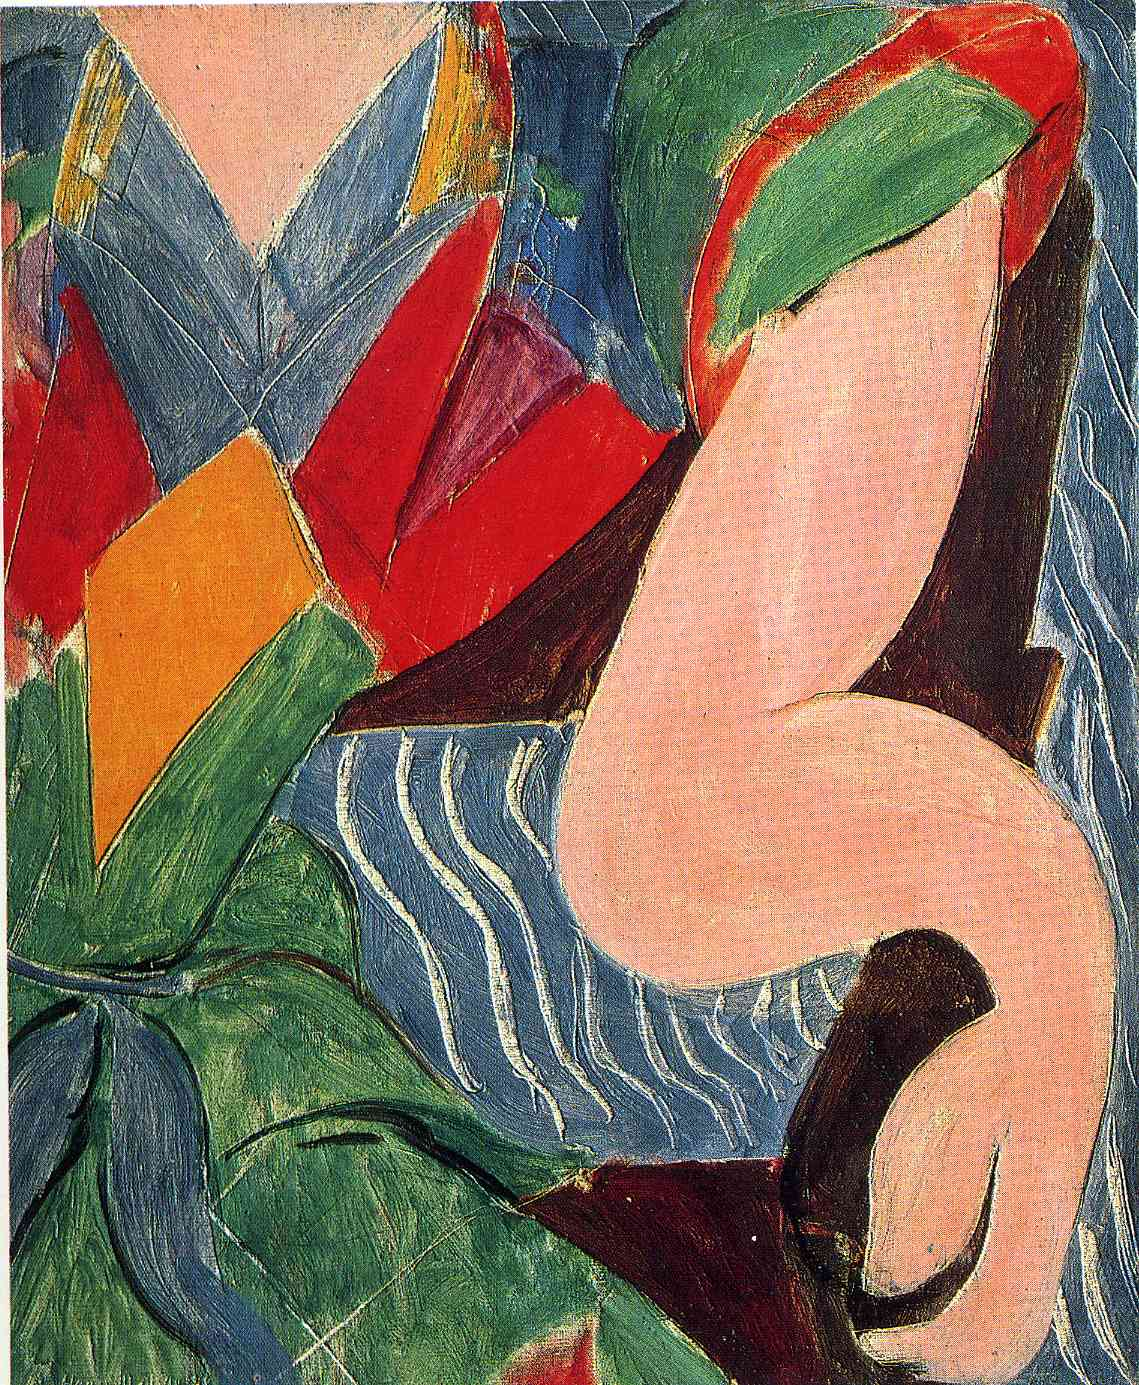 Henri Matisse - The Arm 1938